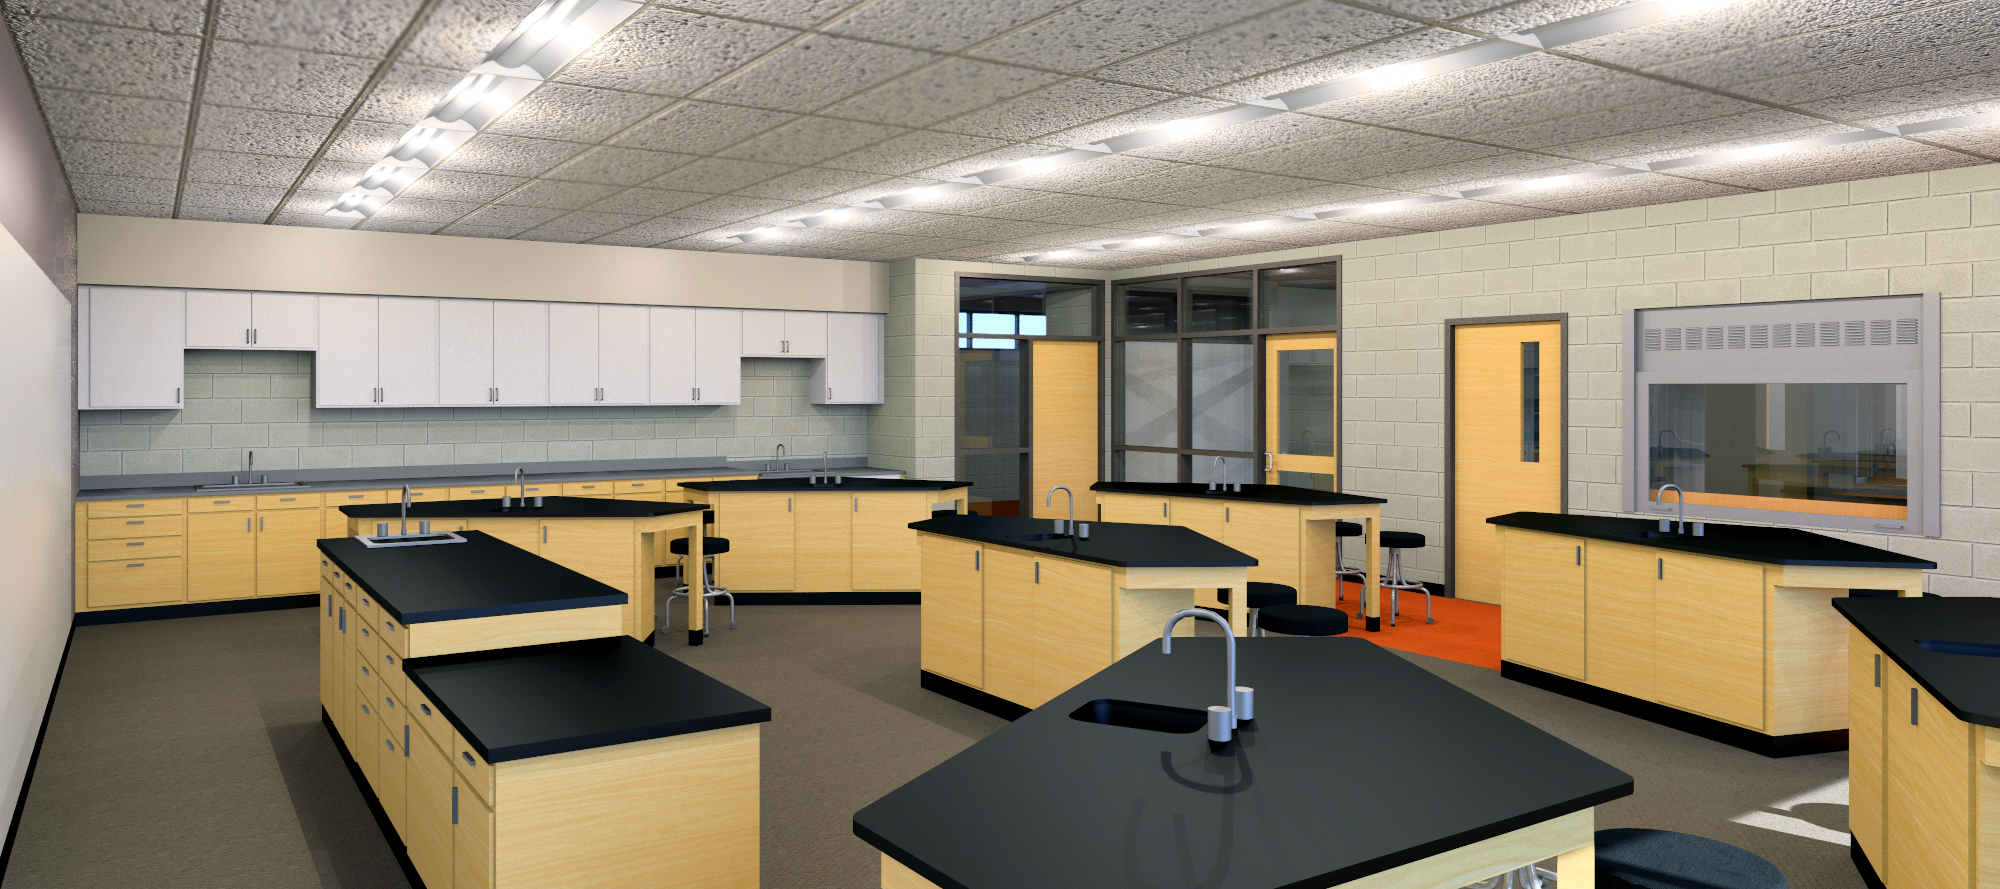 Classroom Design High School ~ College classroom design images elementary school